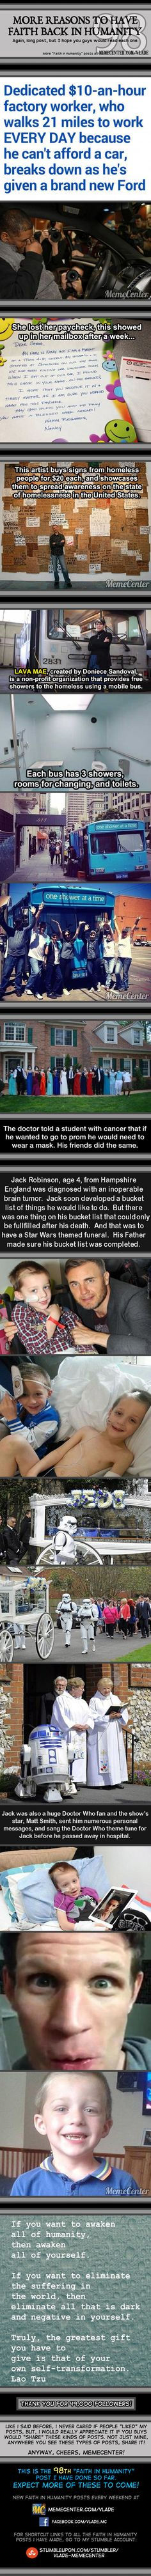 The last one made me cry, I could never even imagine.so sad. Faith In Humanity Human Kindness, Faith In Humanity Restored, Look Here, Good Deeds, Foto Pose, Good People, Amazing People, Make You Smile, In This World